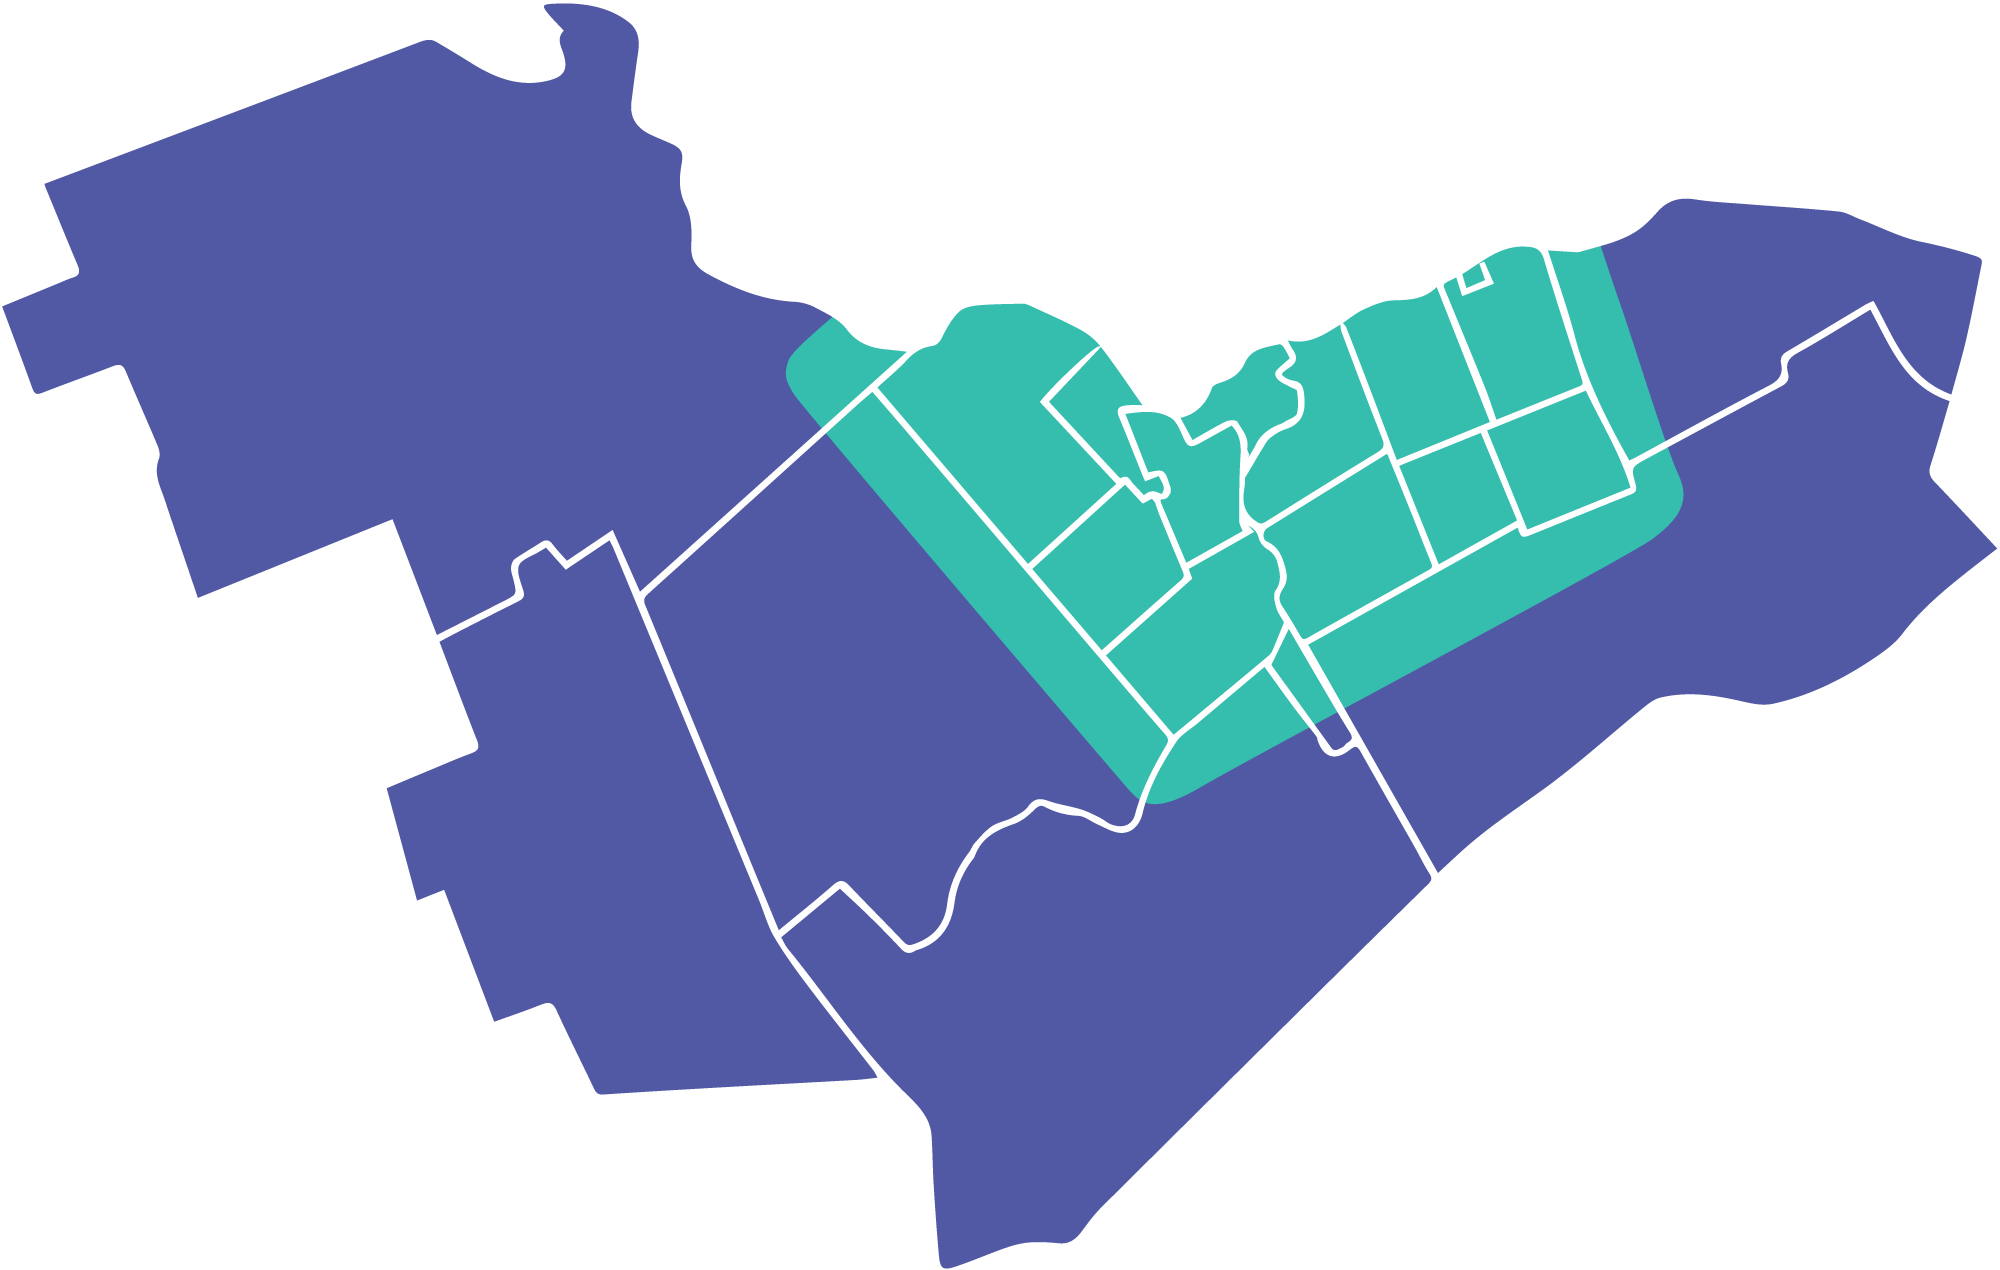 Carte des zones desservies à Ottawa